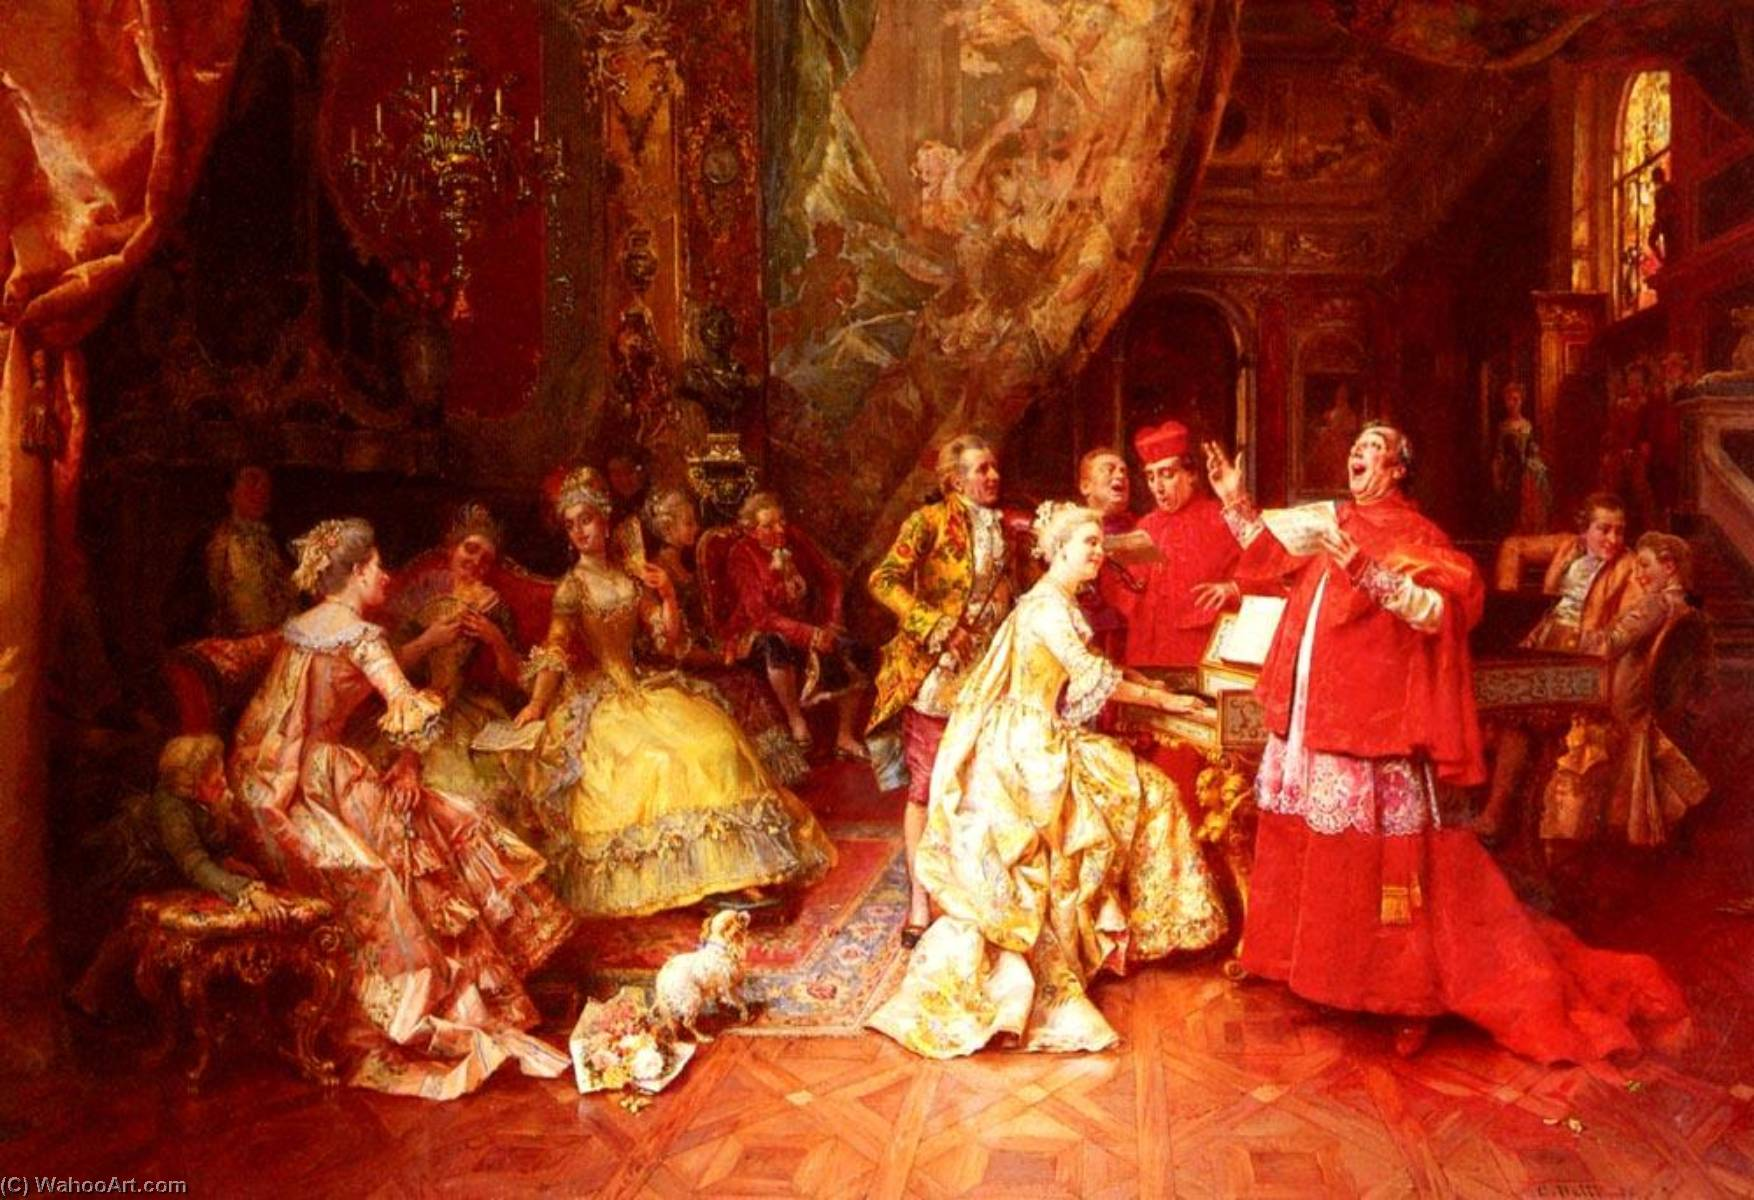 The Gala Recital by Cesare Augusto Detti | Oil Painting | WahooArt.com